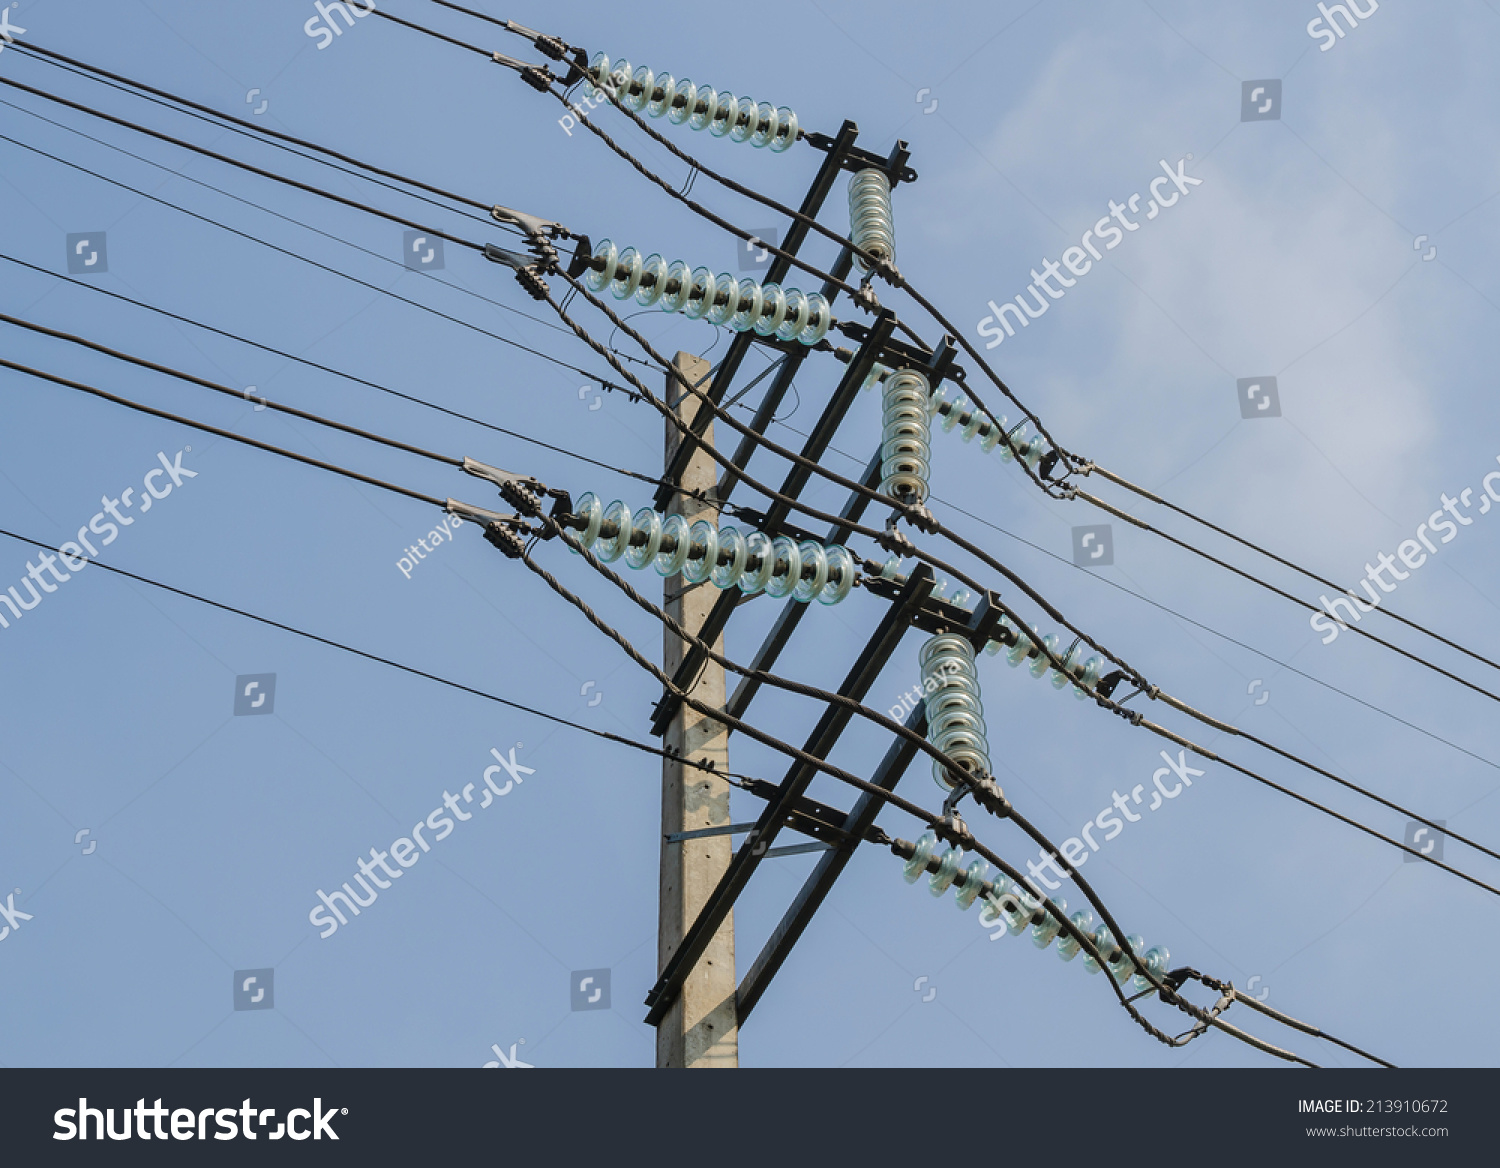 Highvoltage Electrical Insulator Electric Line Stock Photo